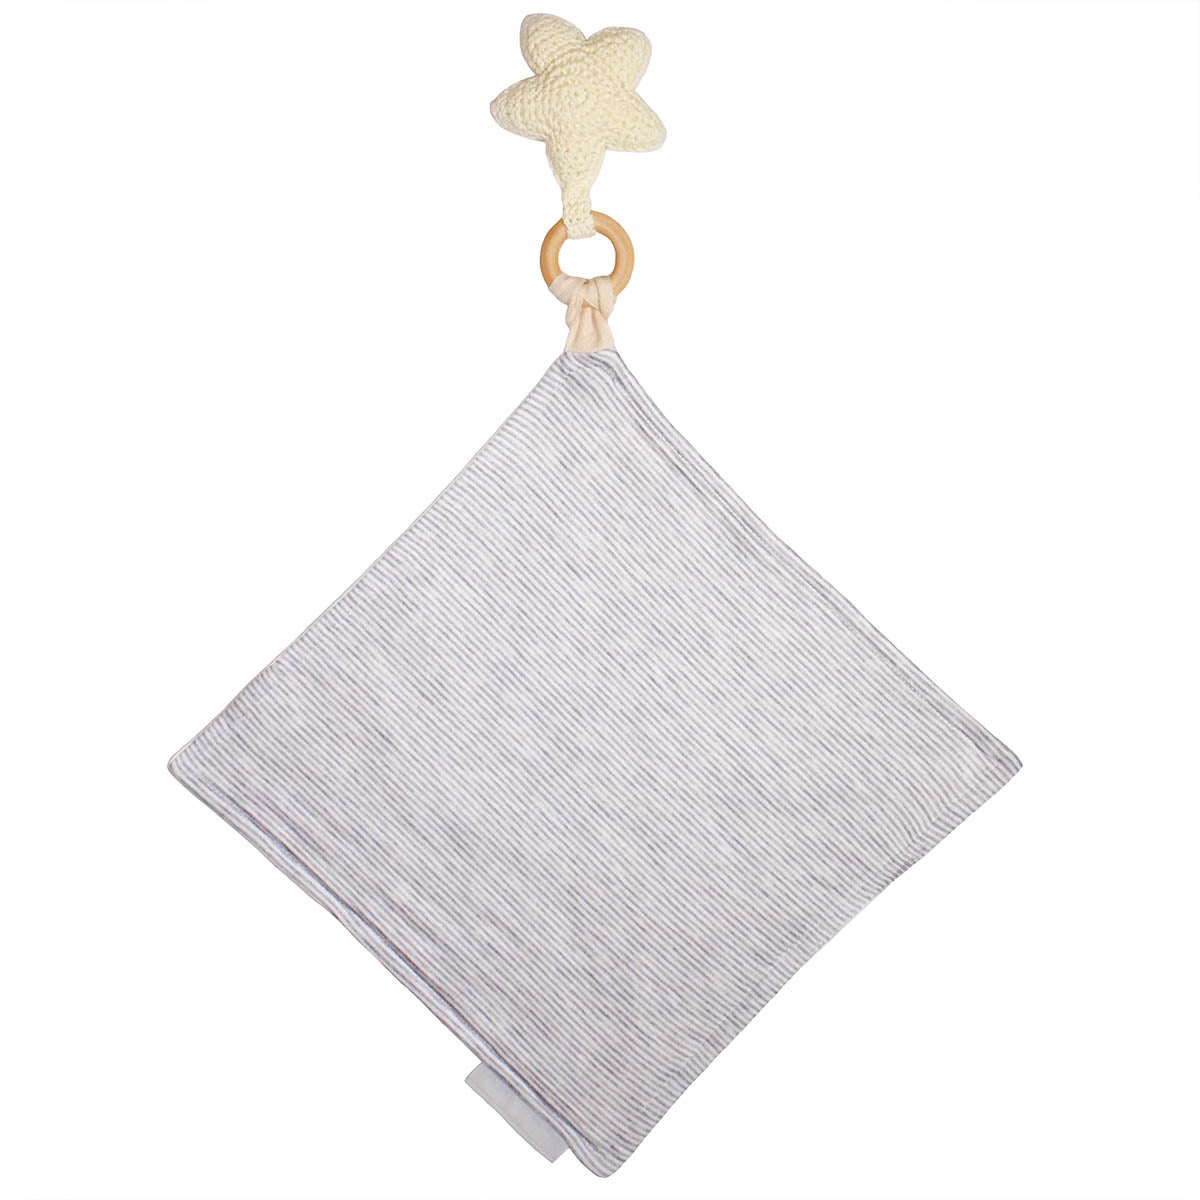 Back of Star Crochet Teether with Heather Grey Stripe on Mini Blanket